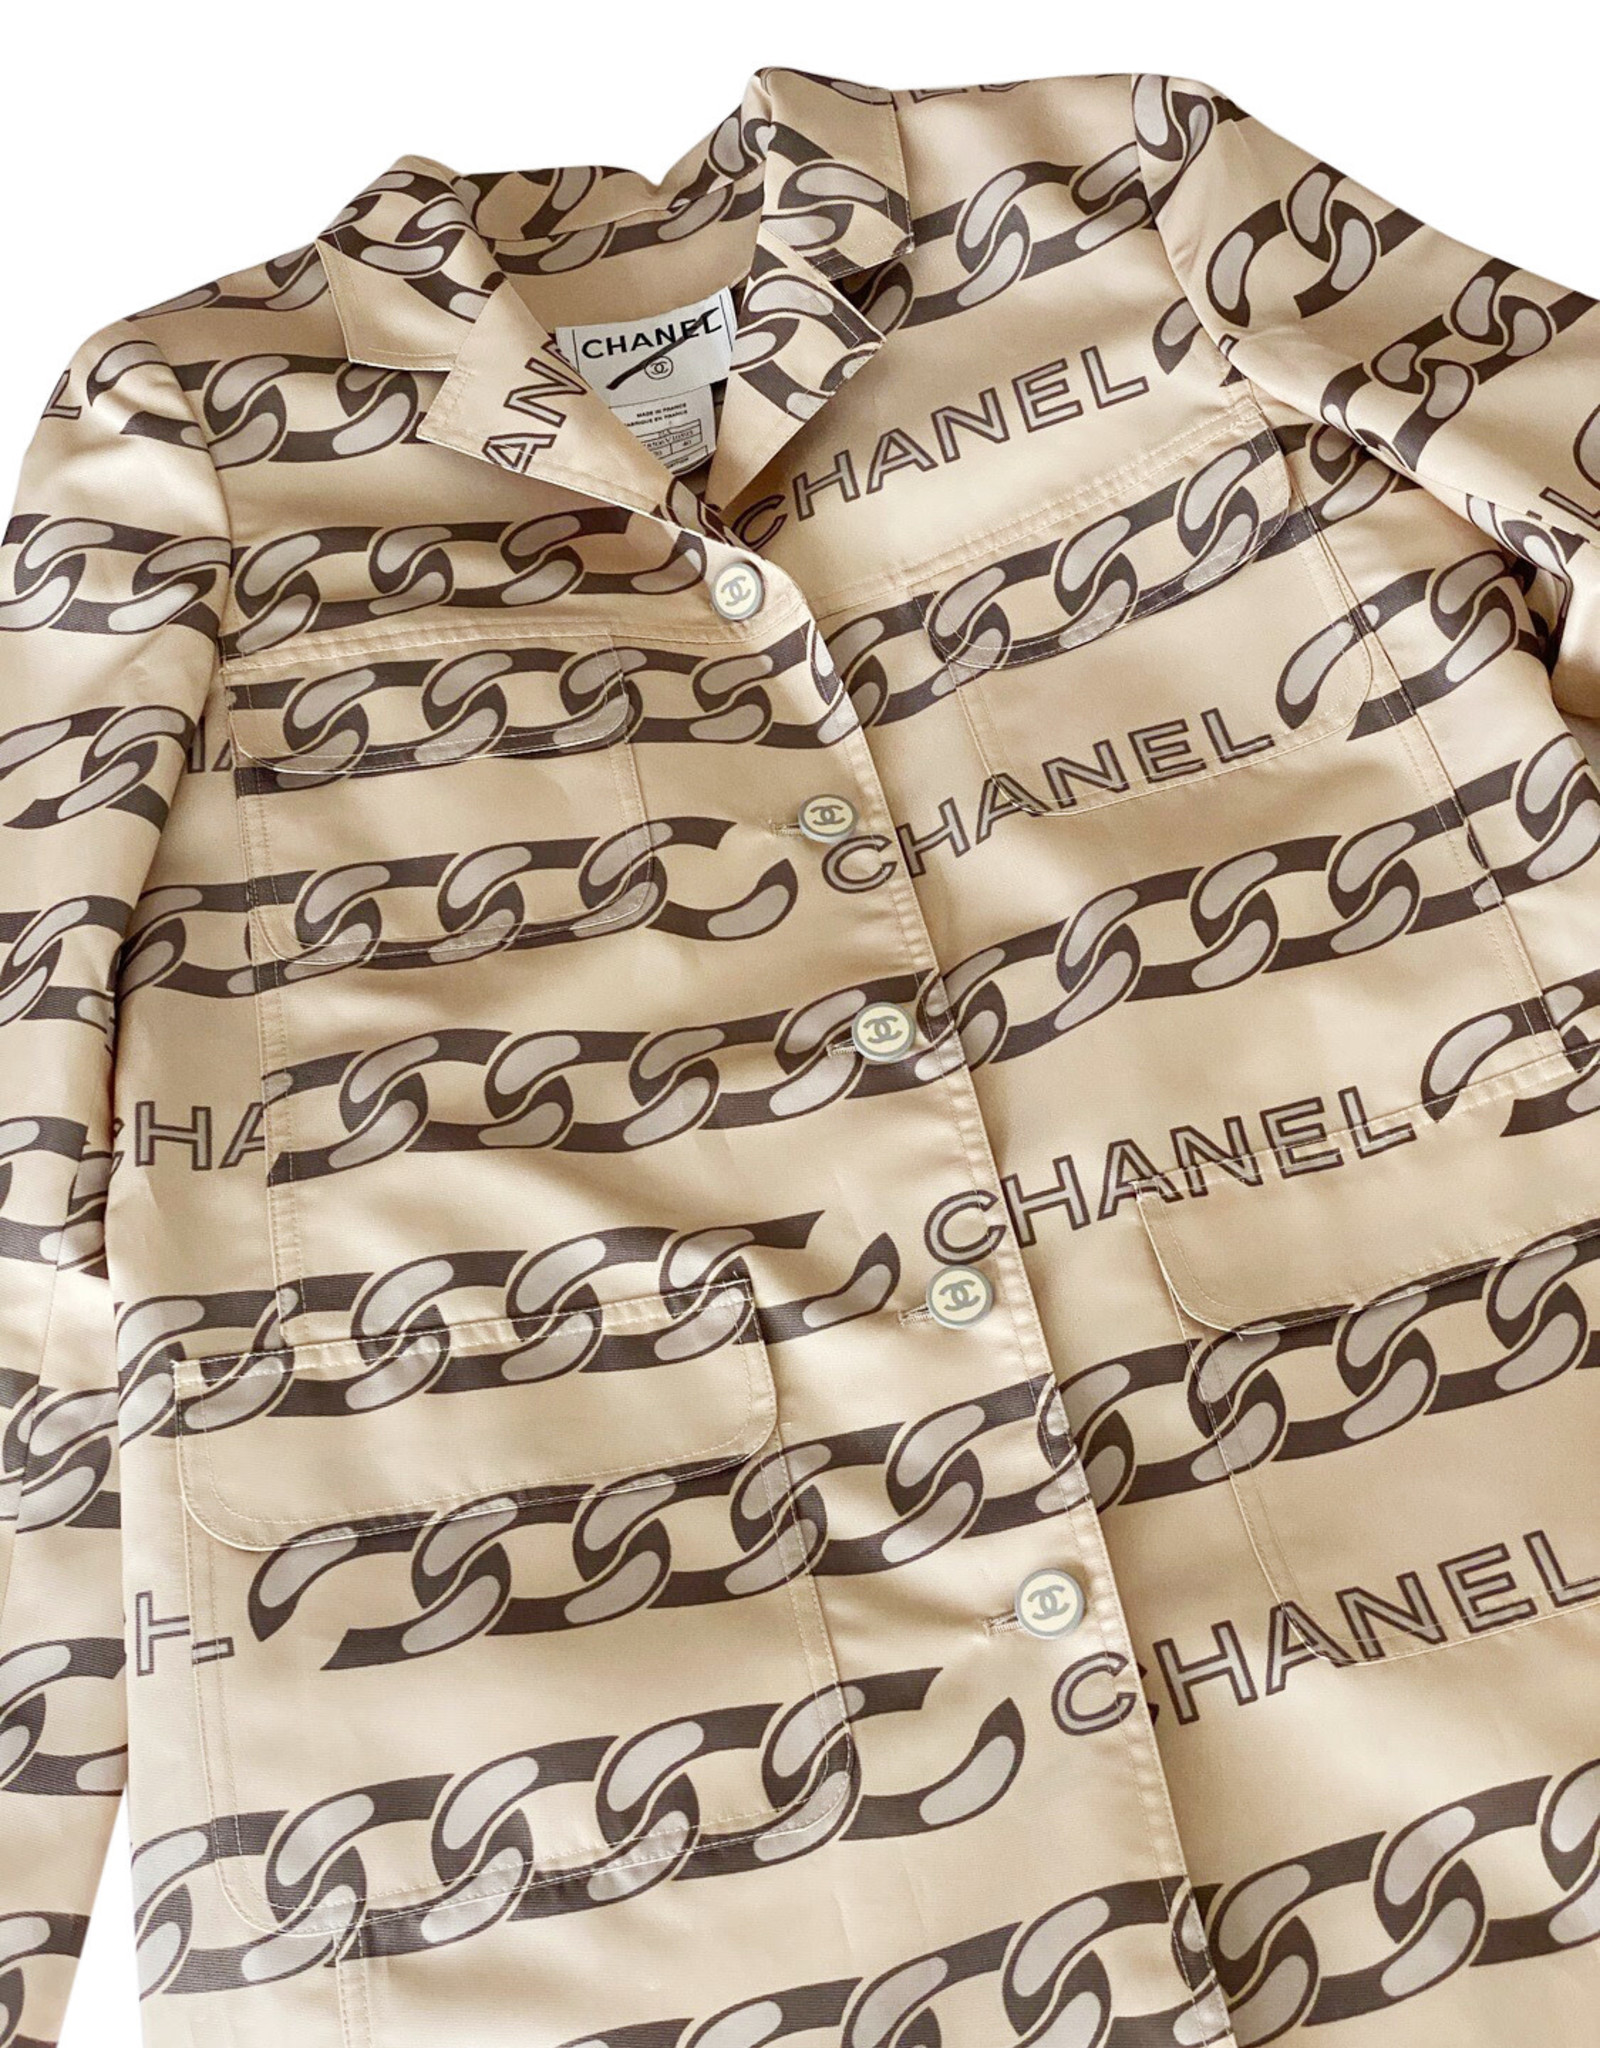 Chanel Chanel Monogram Reversible Jacket sz 36 (Vintage)